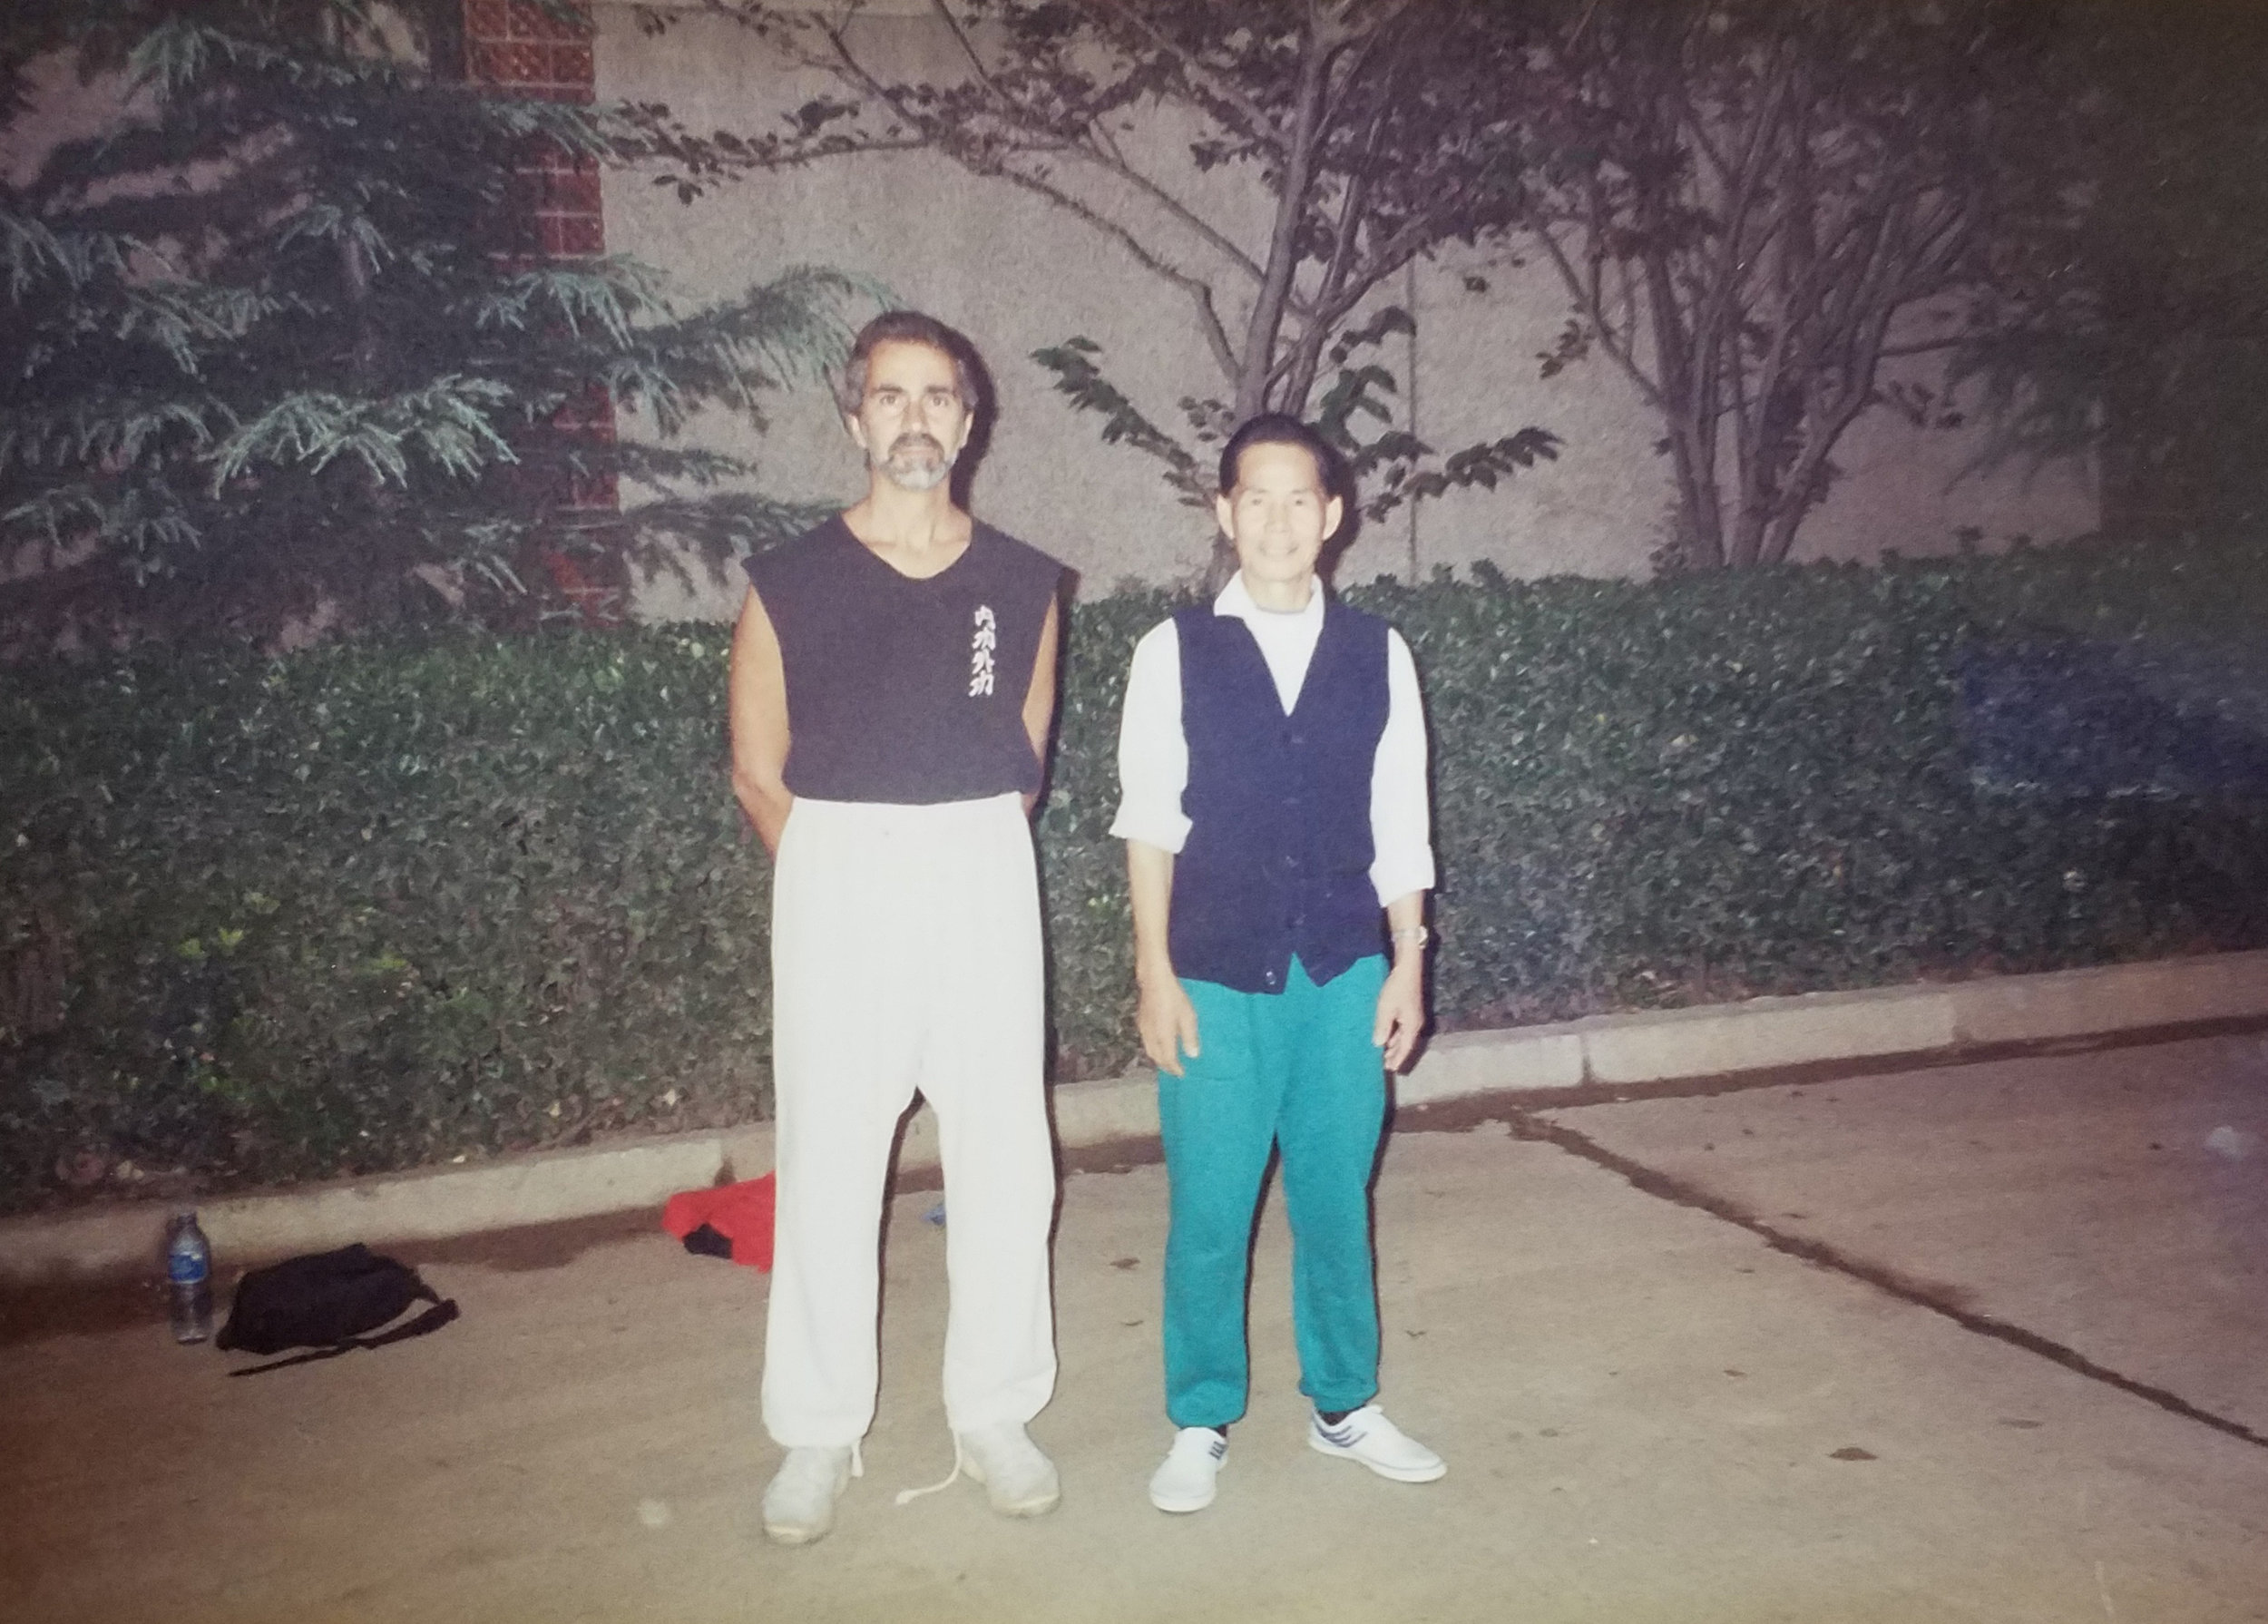 Master Paolillo with Master Hing Ling Kwan during one of their Baguazhang training sessions in Zhengzhou, China, 1993.